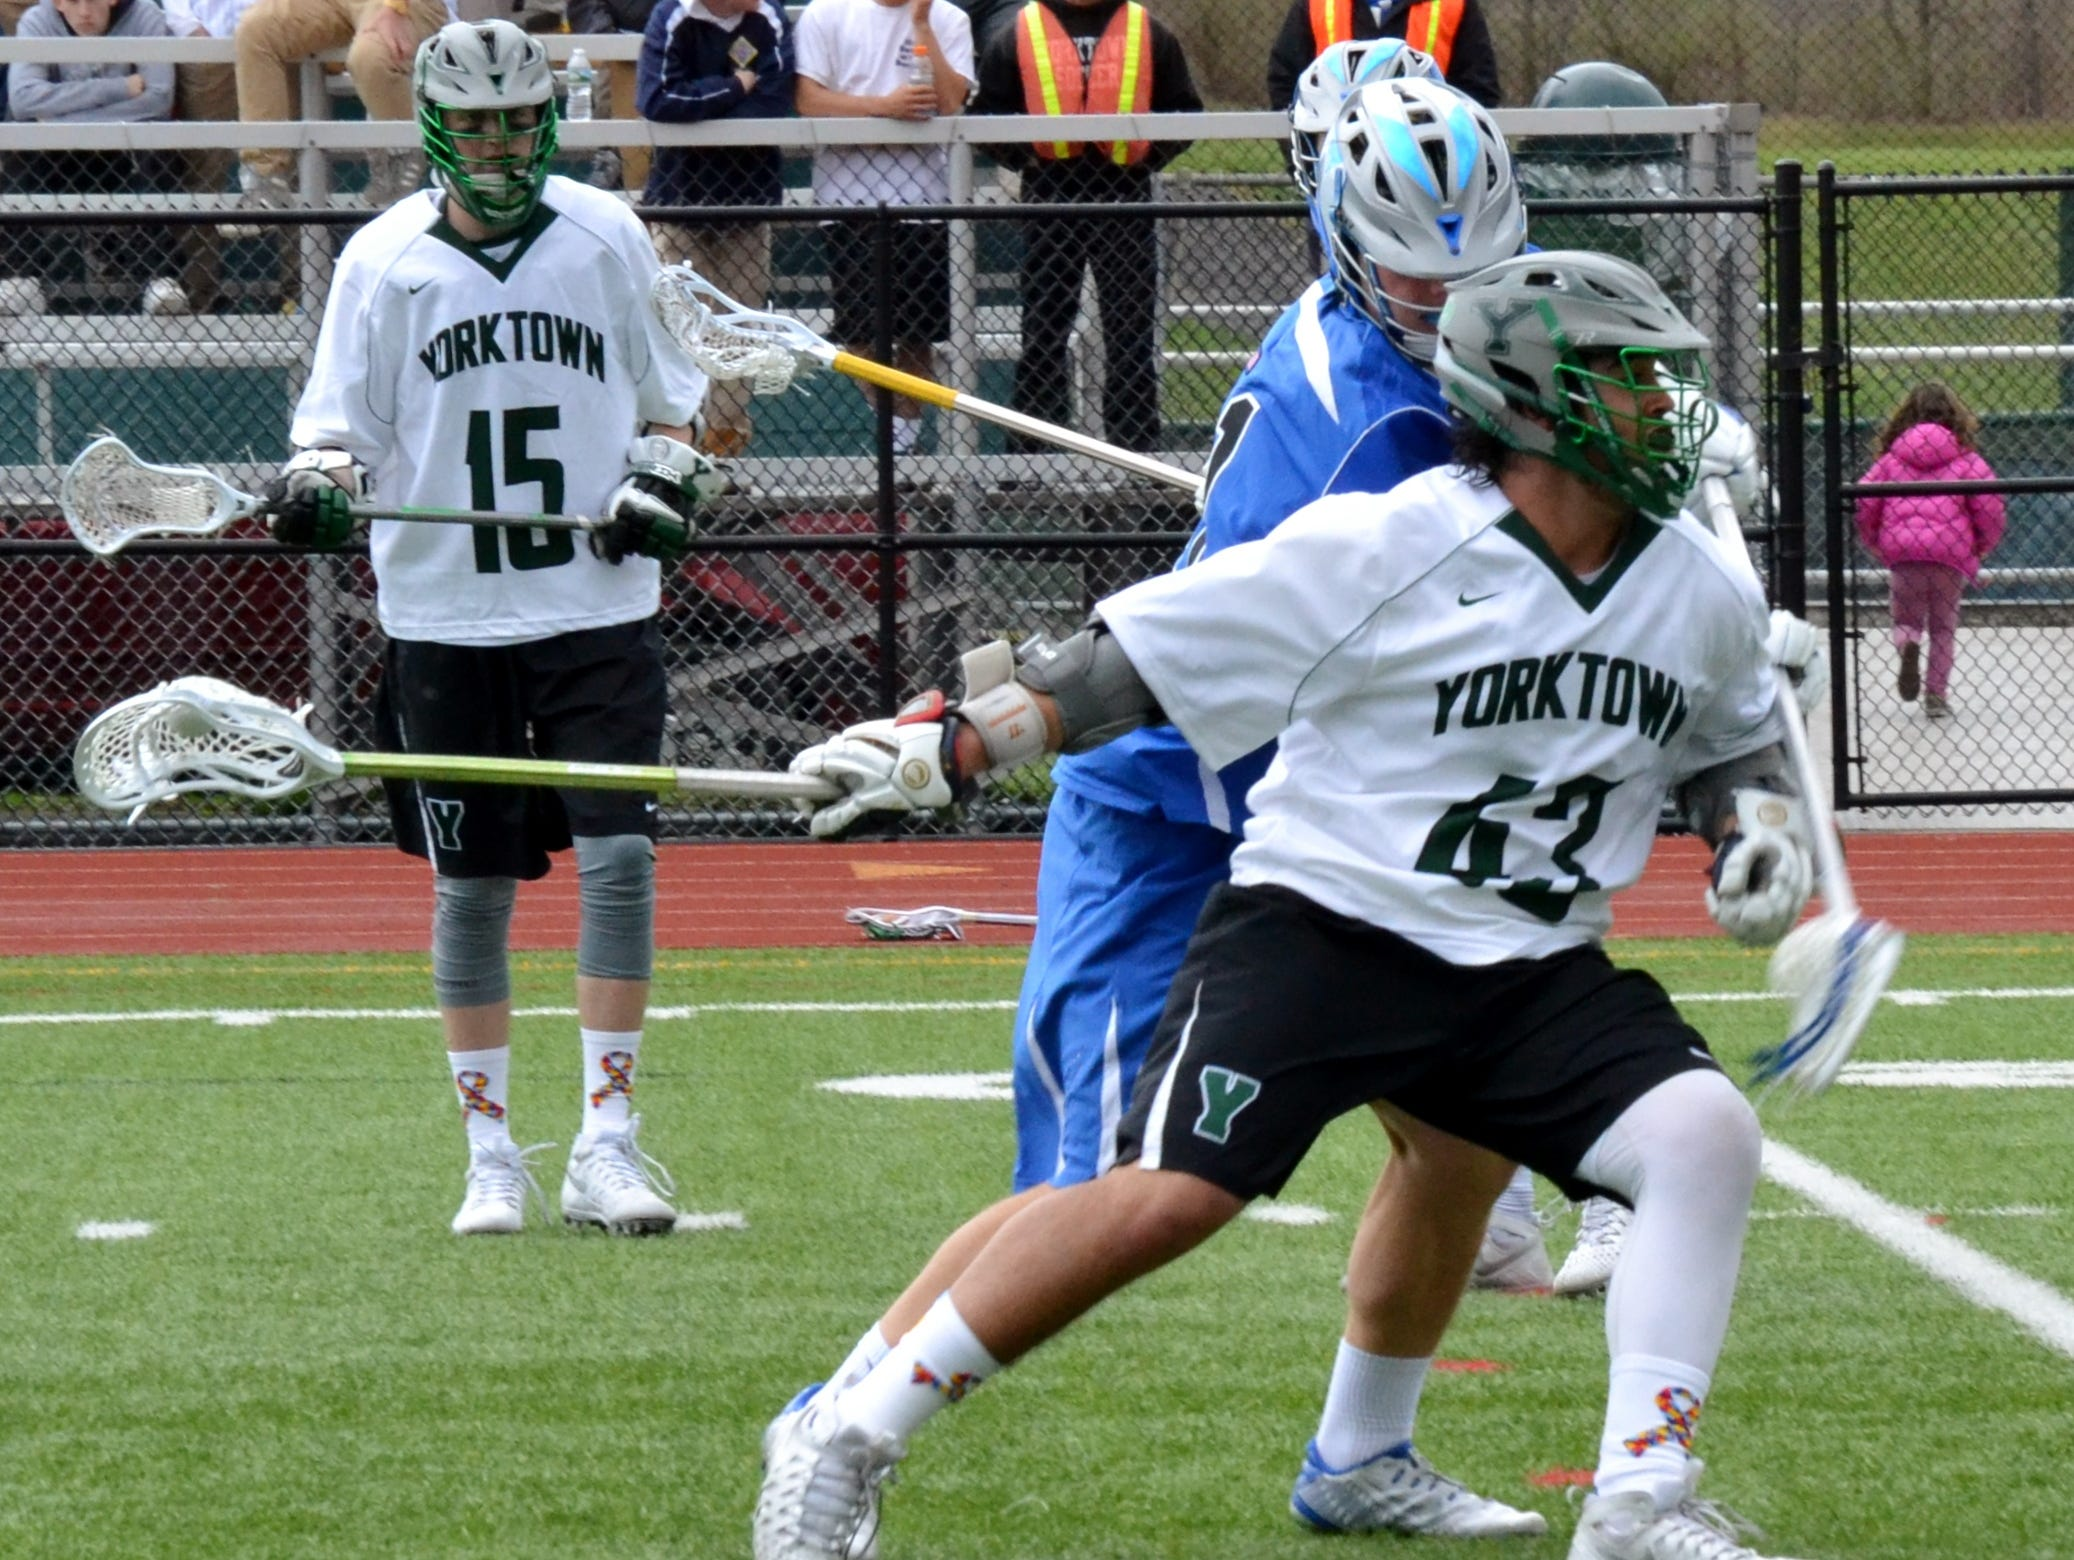 Yorktown attackman Justin Cavallo struggles to get loose on Saturday during a 12-3 loss to Darien, Conn.